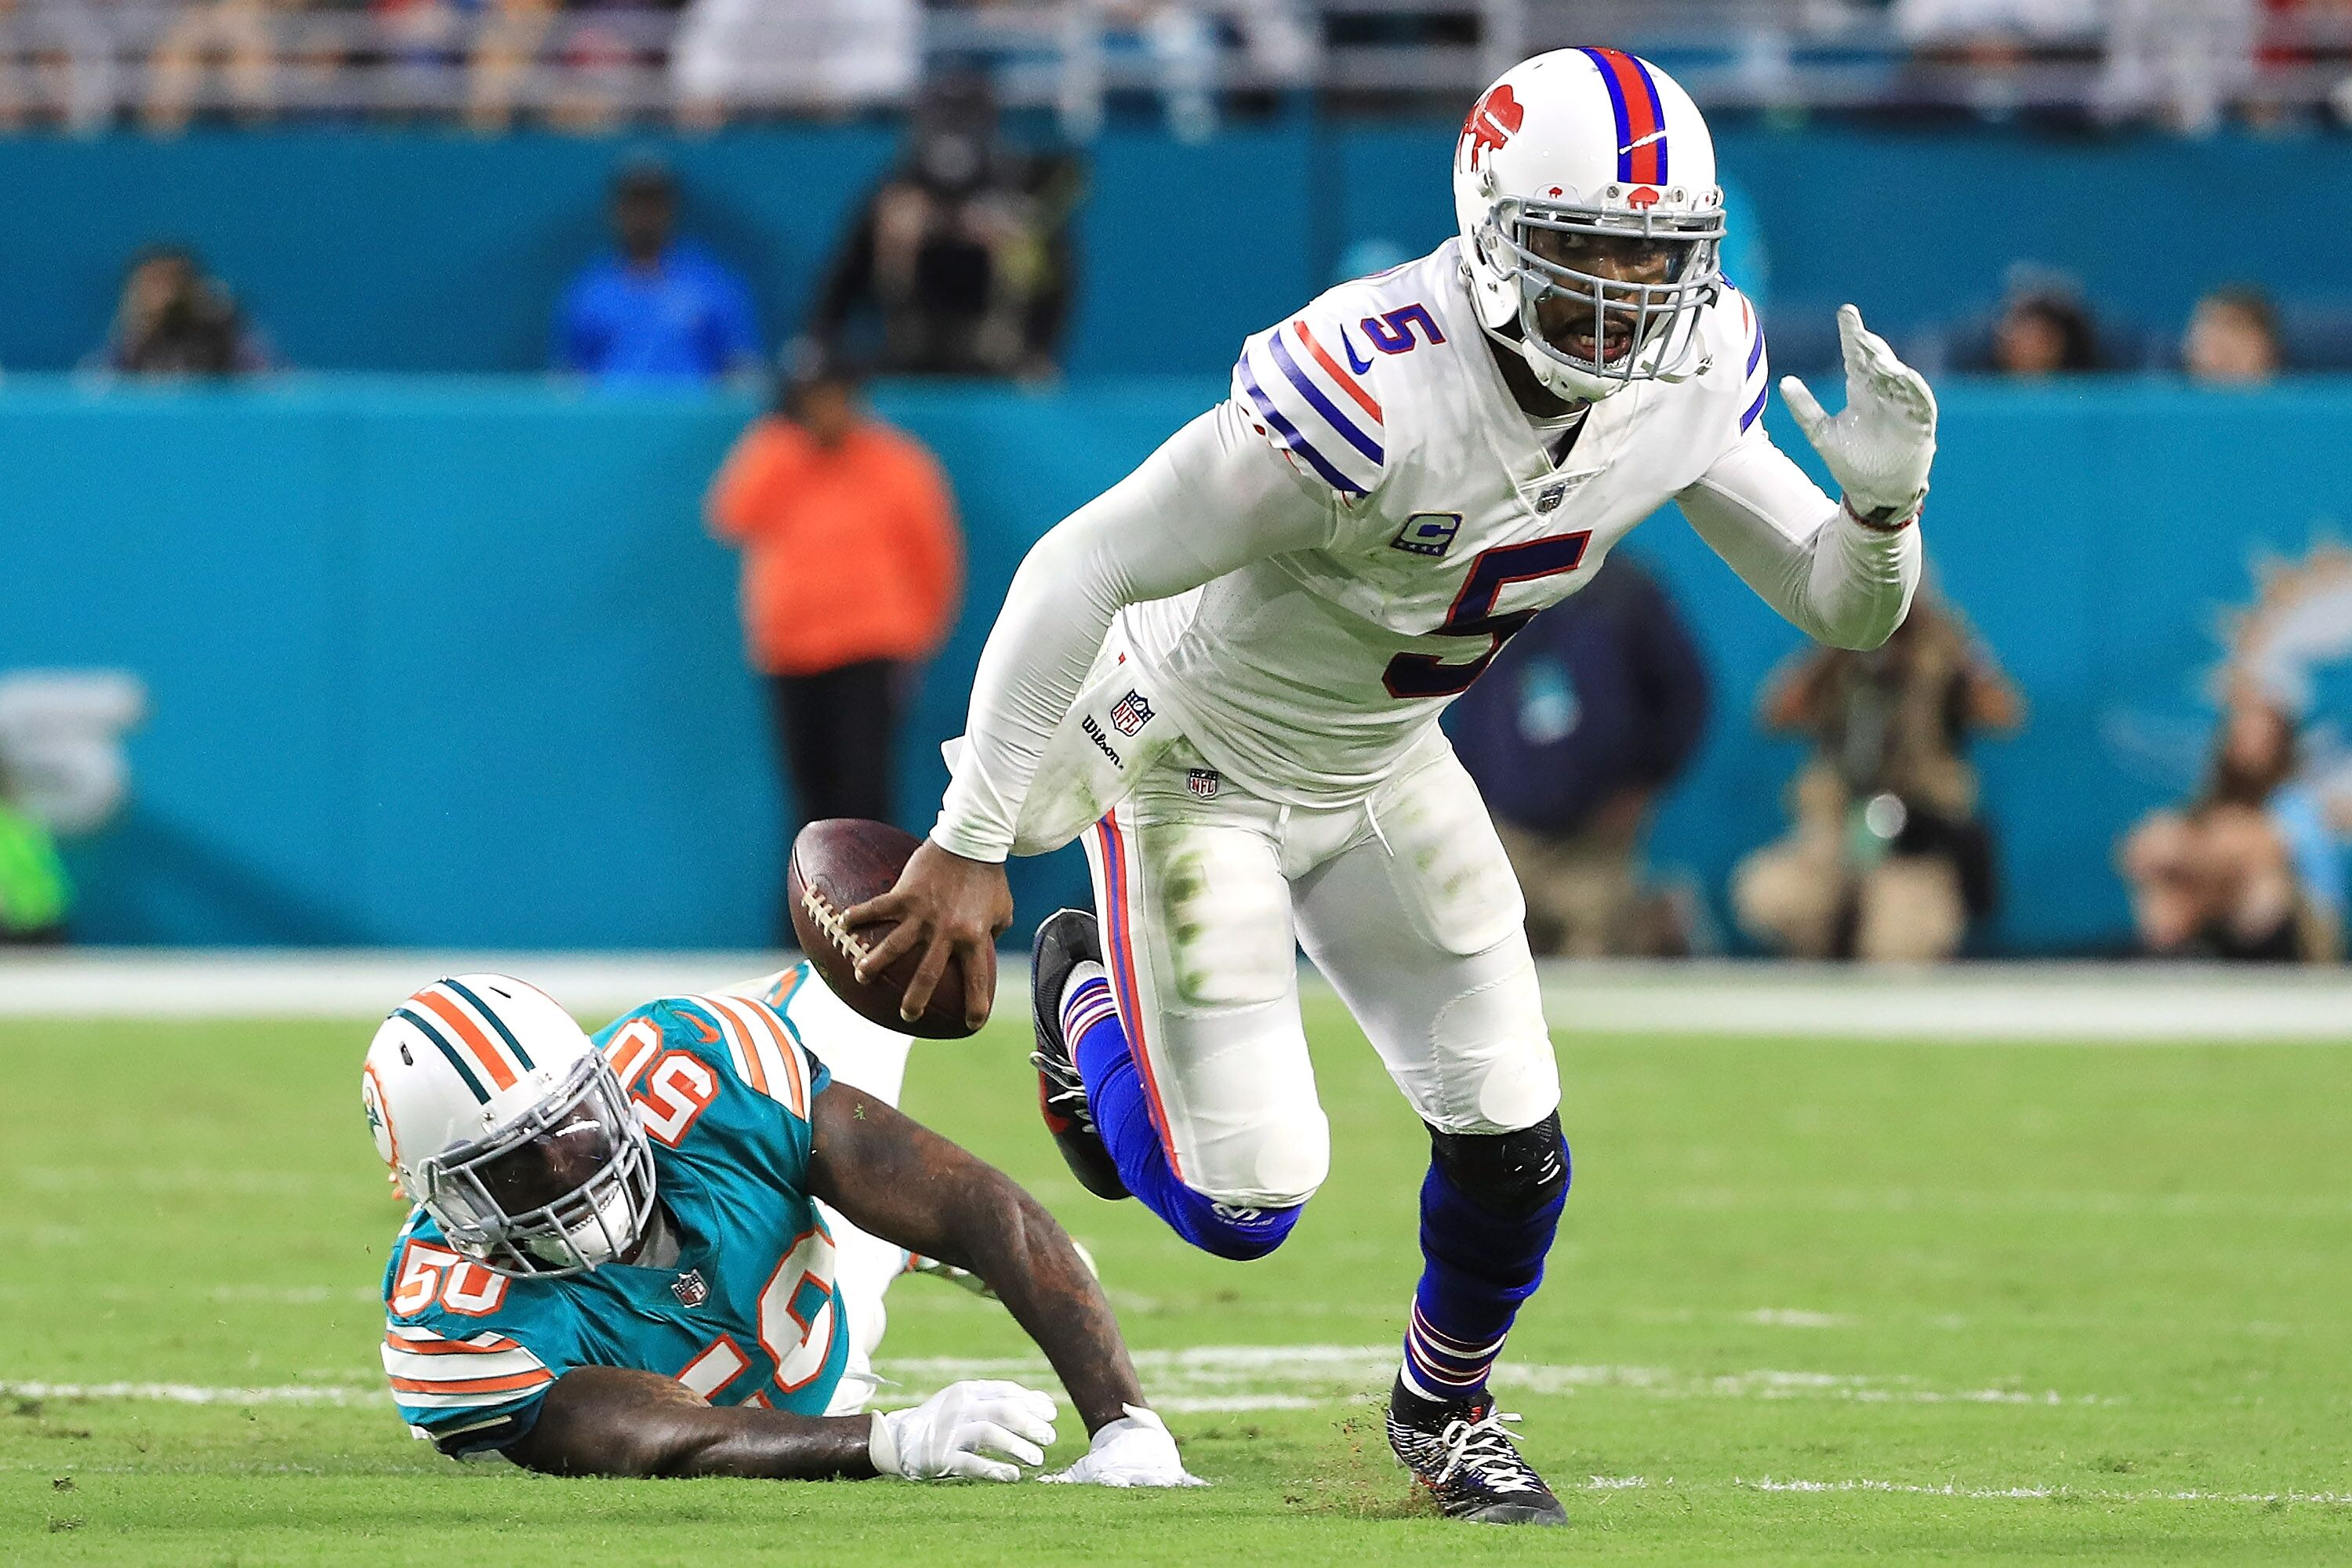 900128120-buffalo-bills-v-miami-dolphins.jpg